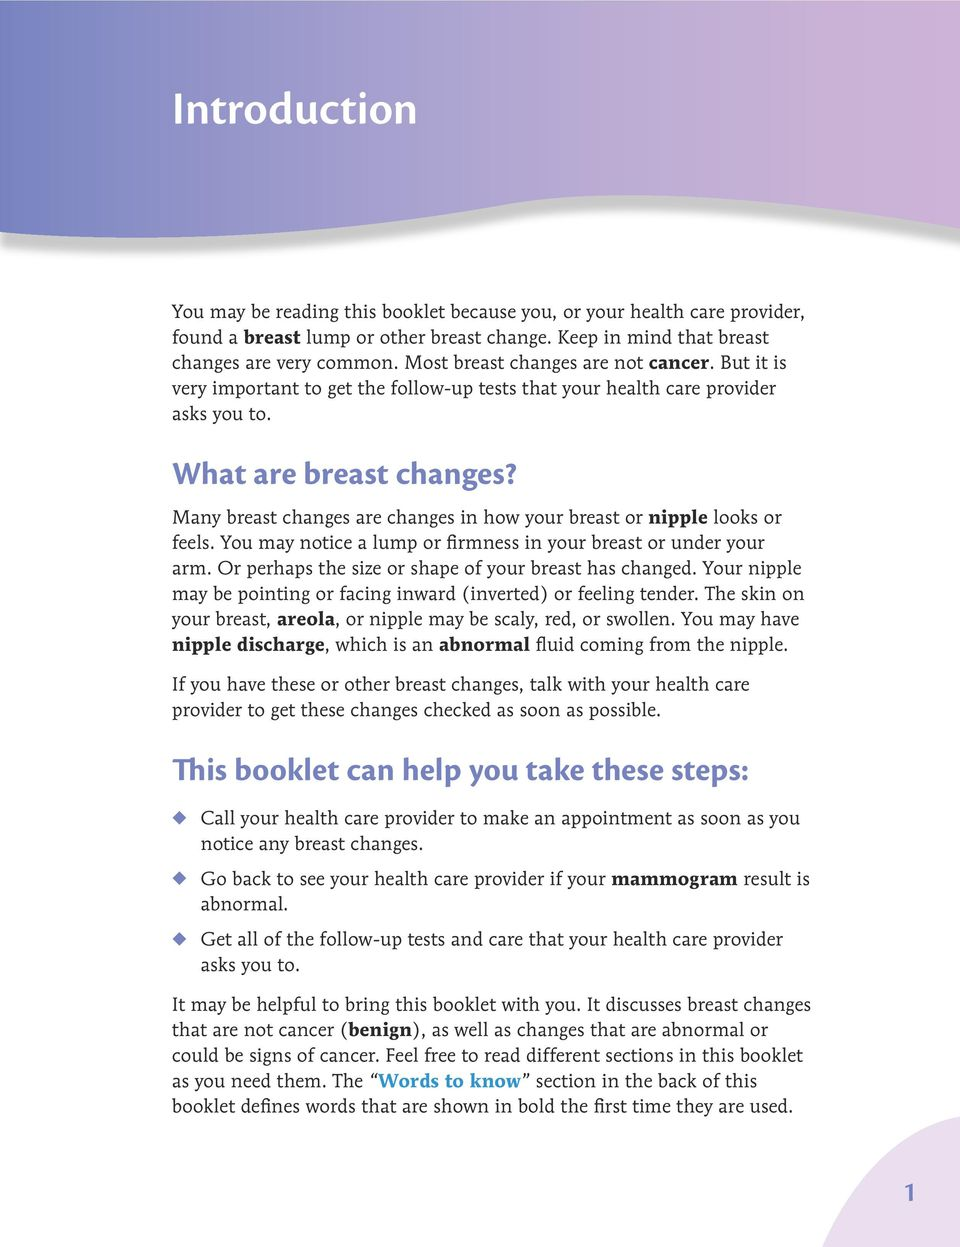 Many breast changes are changes in how your breast or nipple looks or feels. You may notice a lump or firmness in your breast or under your arm.